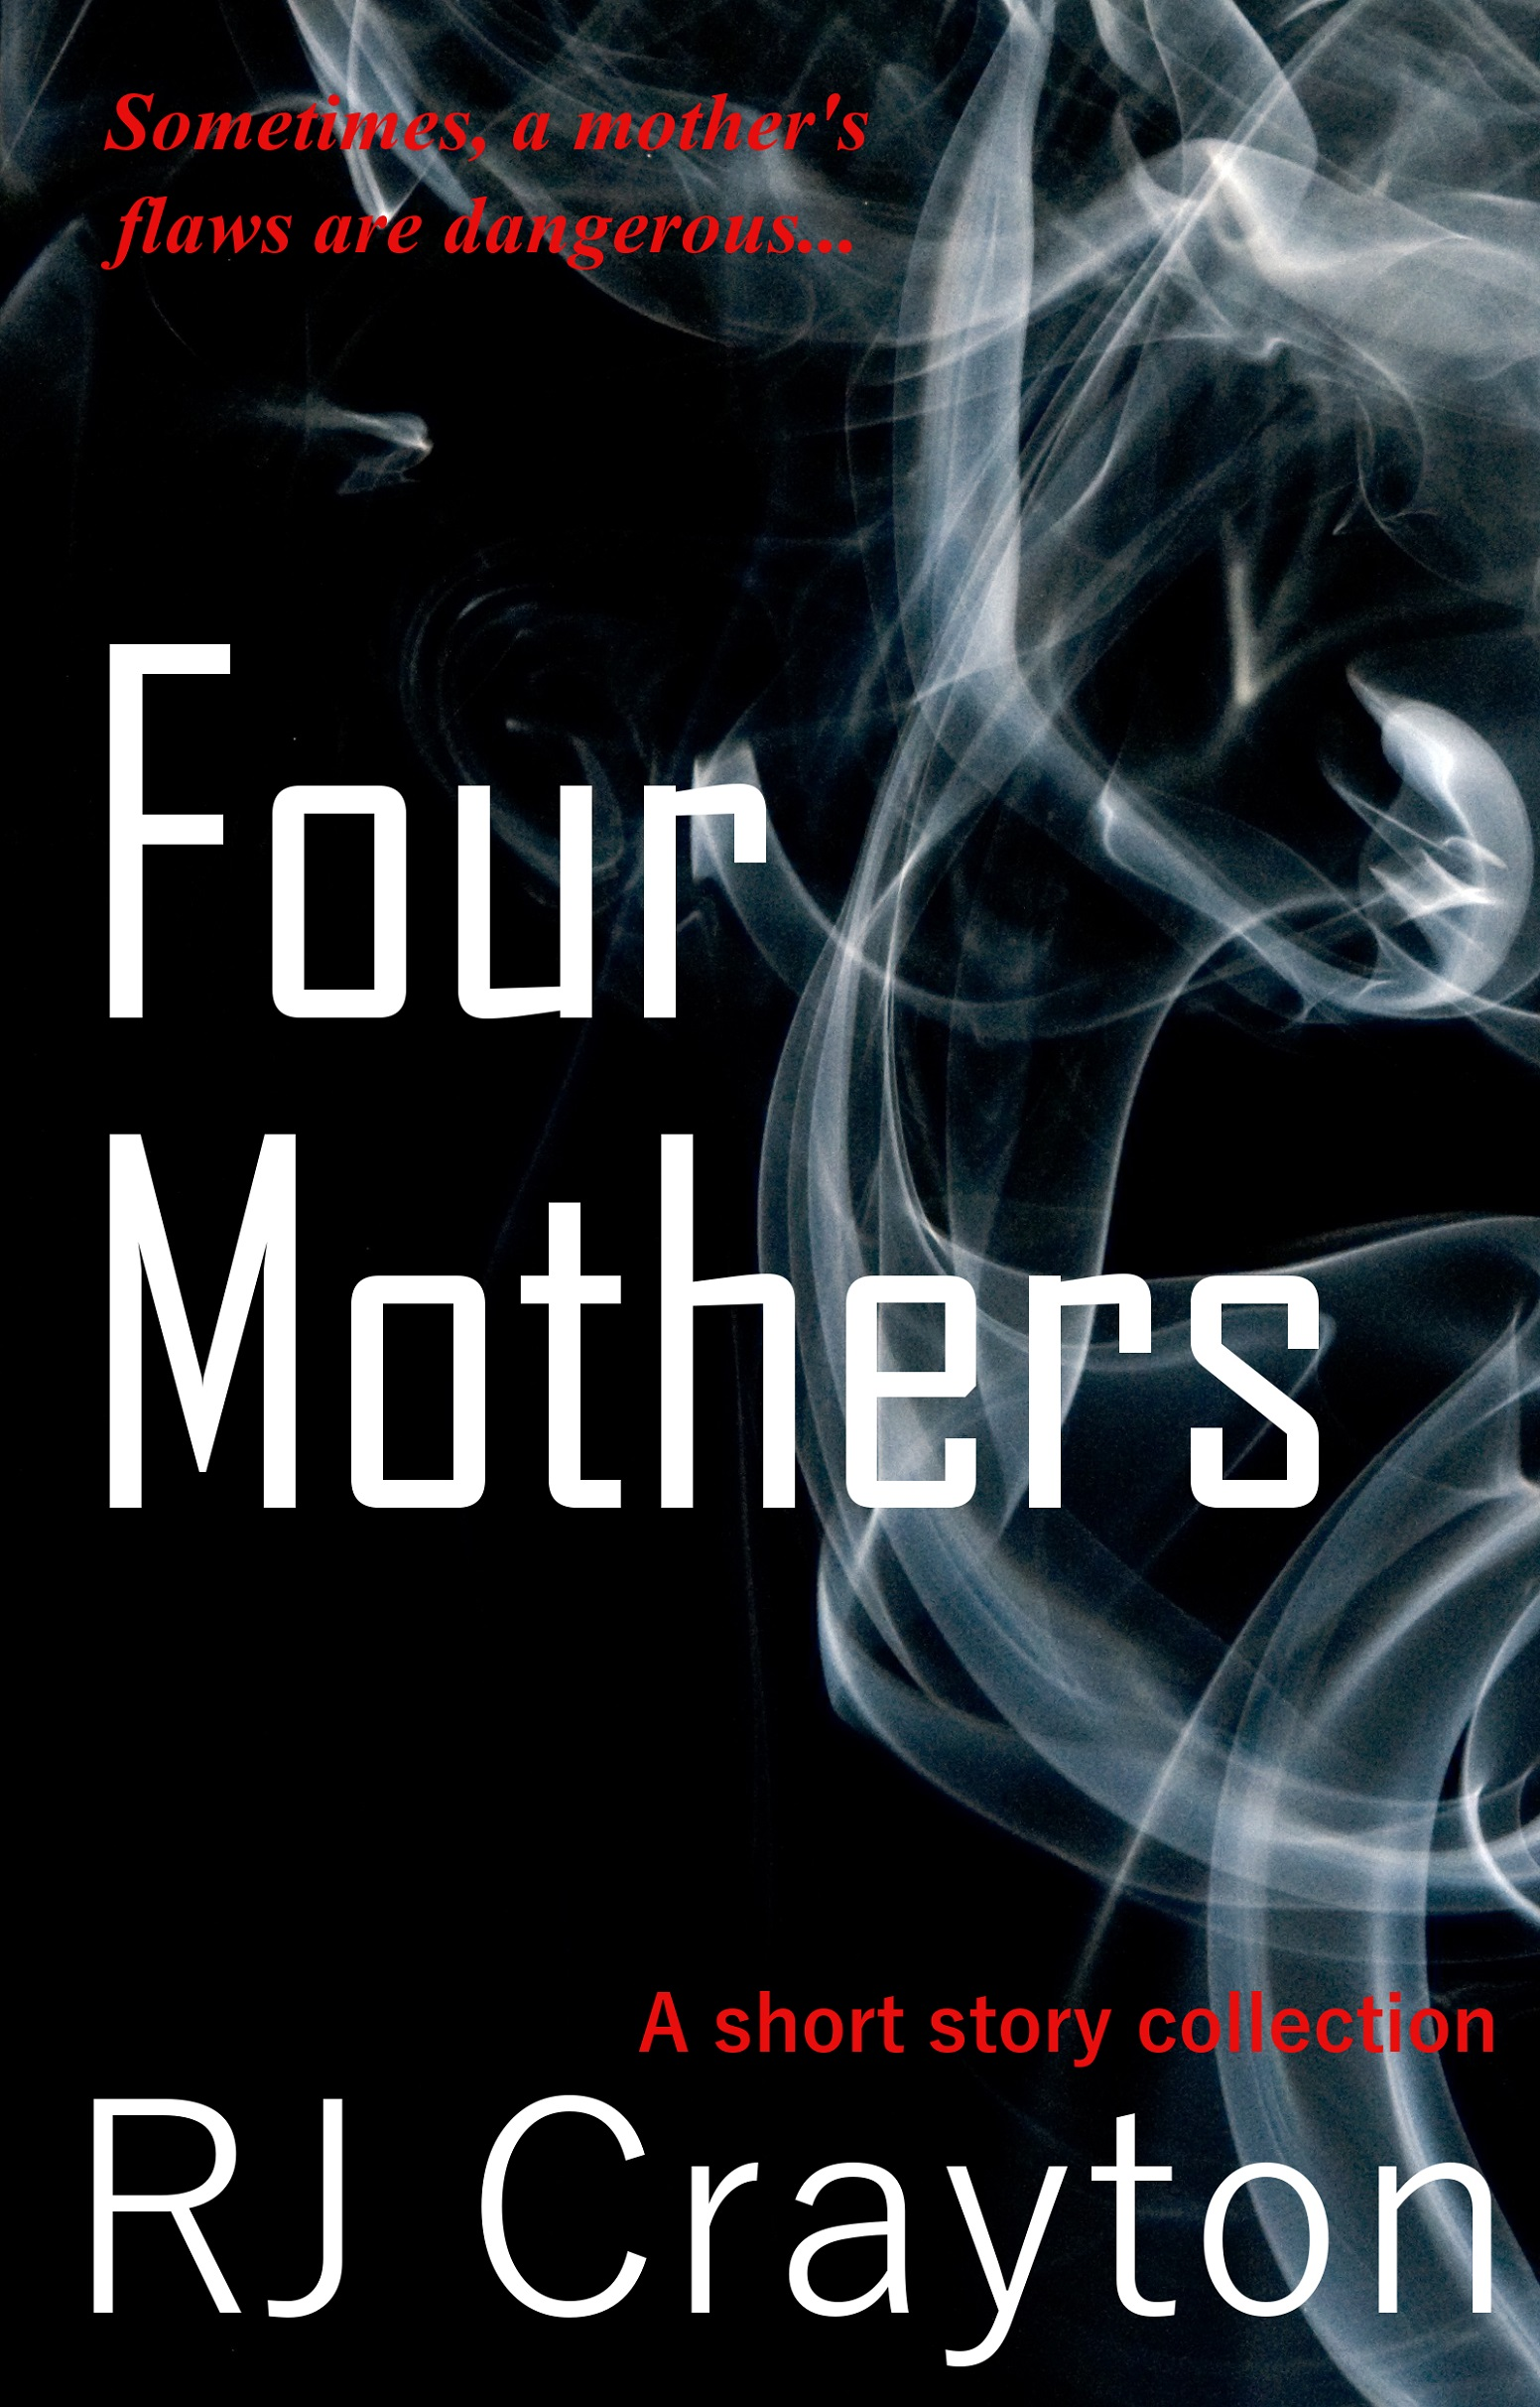 fourmothers_2015new2_medium